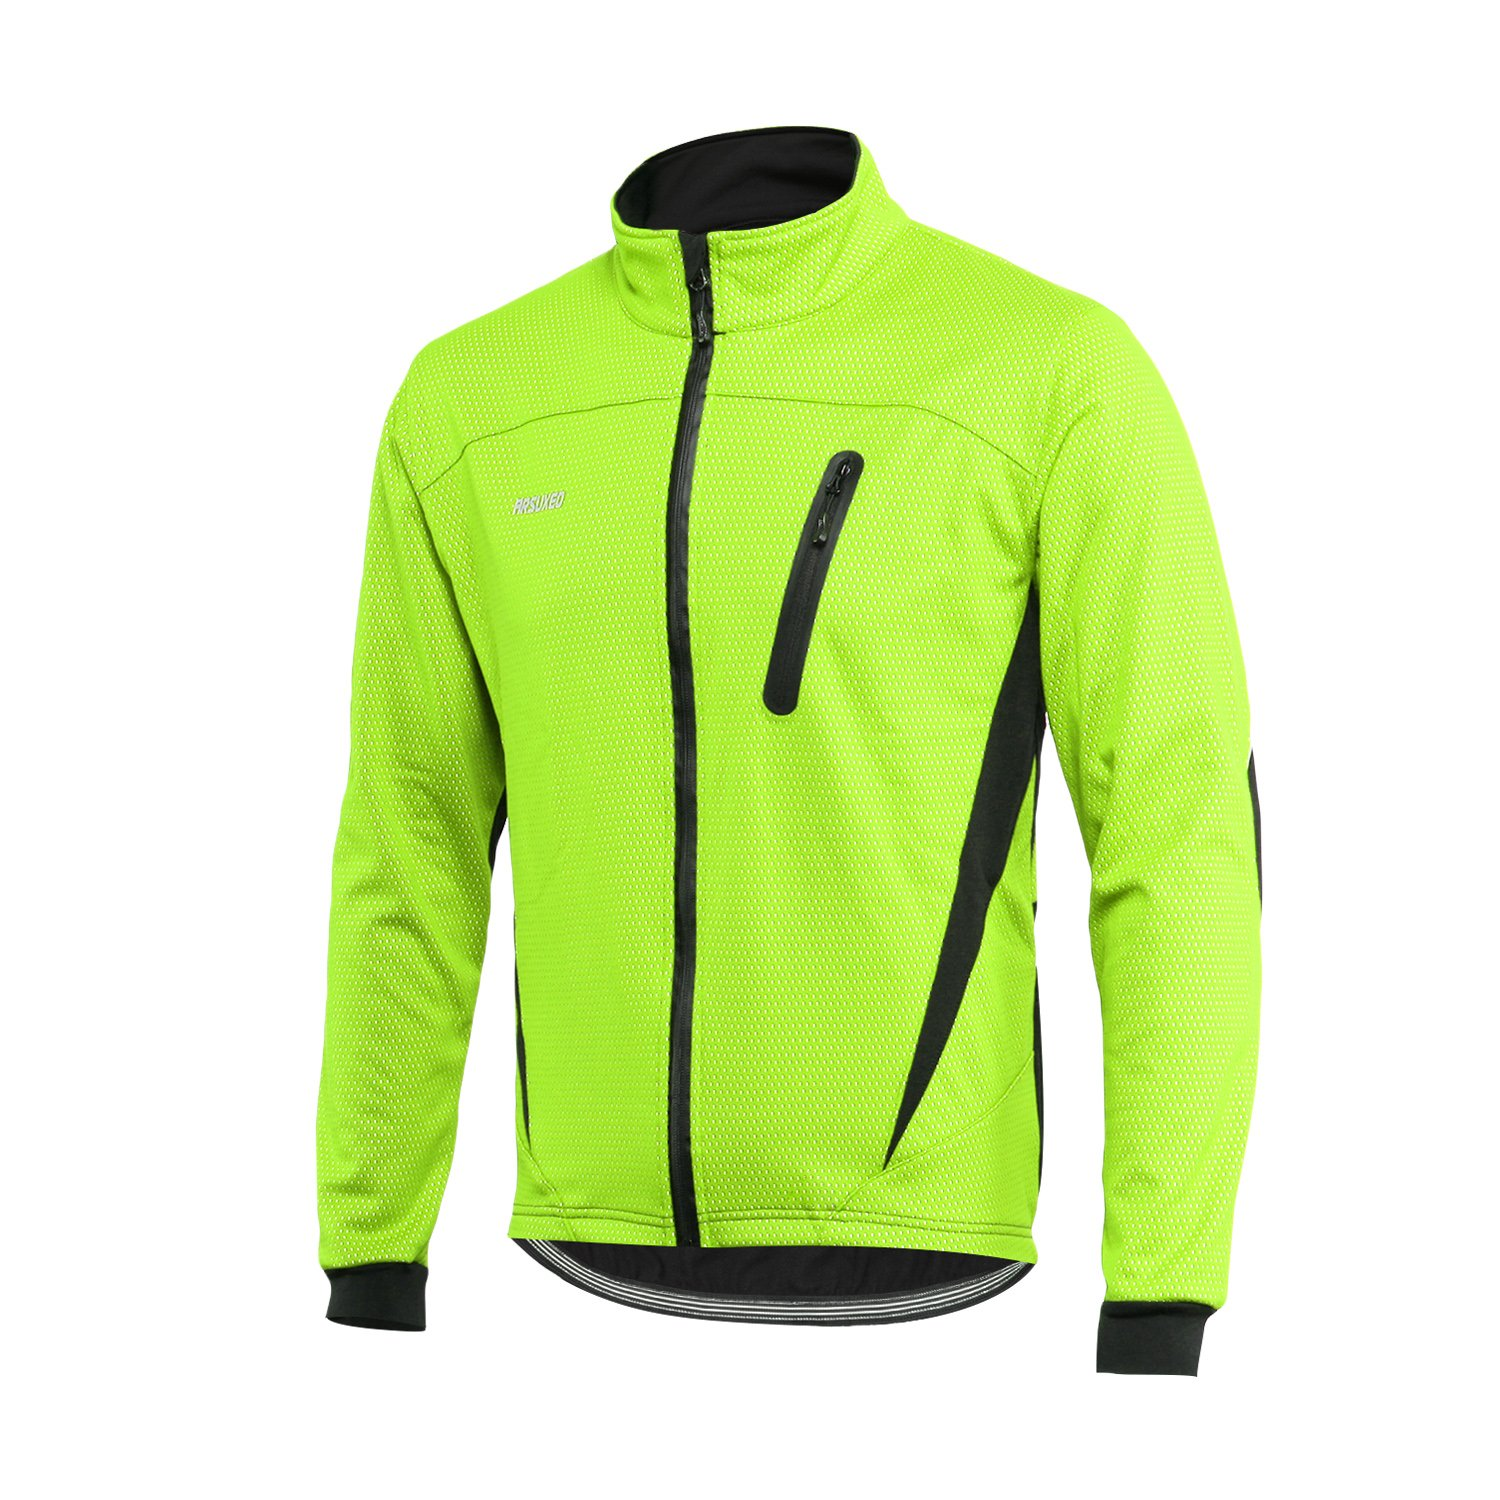 ARSUXEO Winter Warm UP Thermal Fleece Cycling Jacket Windproof Waterproof Breathalbe 16H Green Size Medium by ARSUXEO